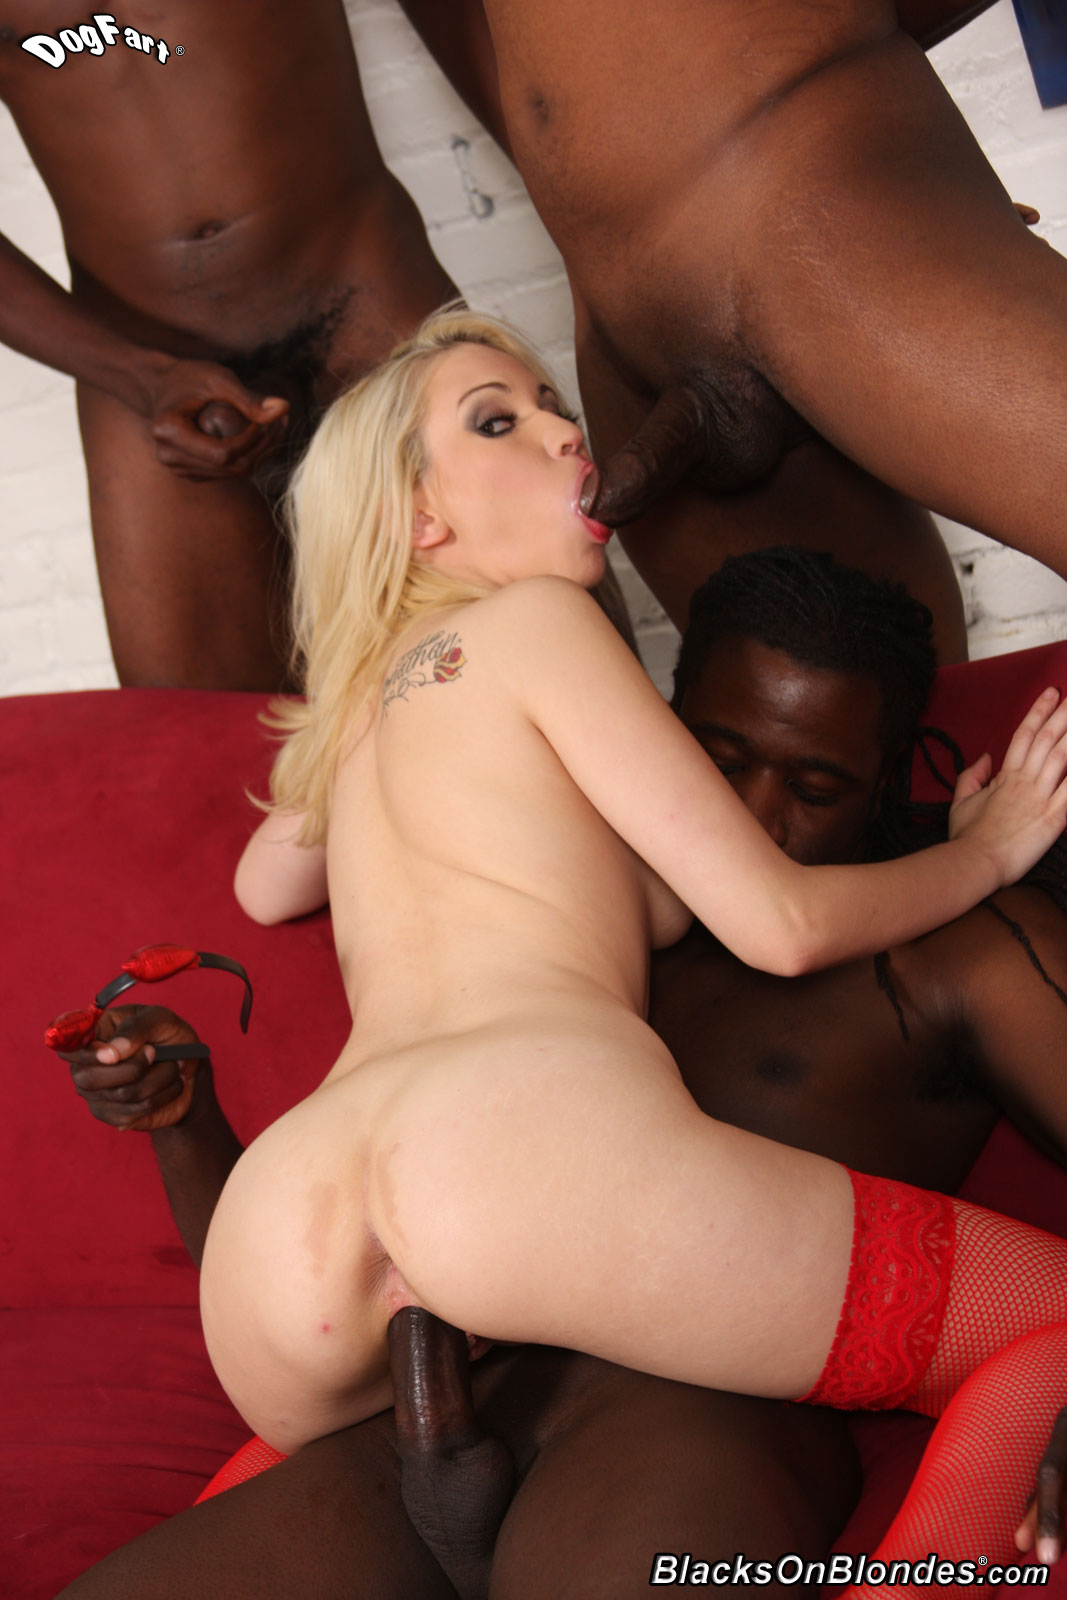 galleries blacksonblondes content sara monroe pic 23